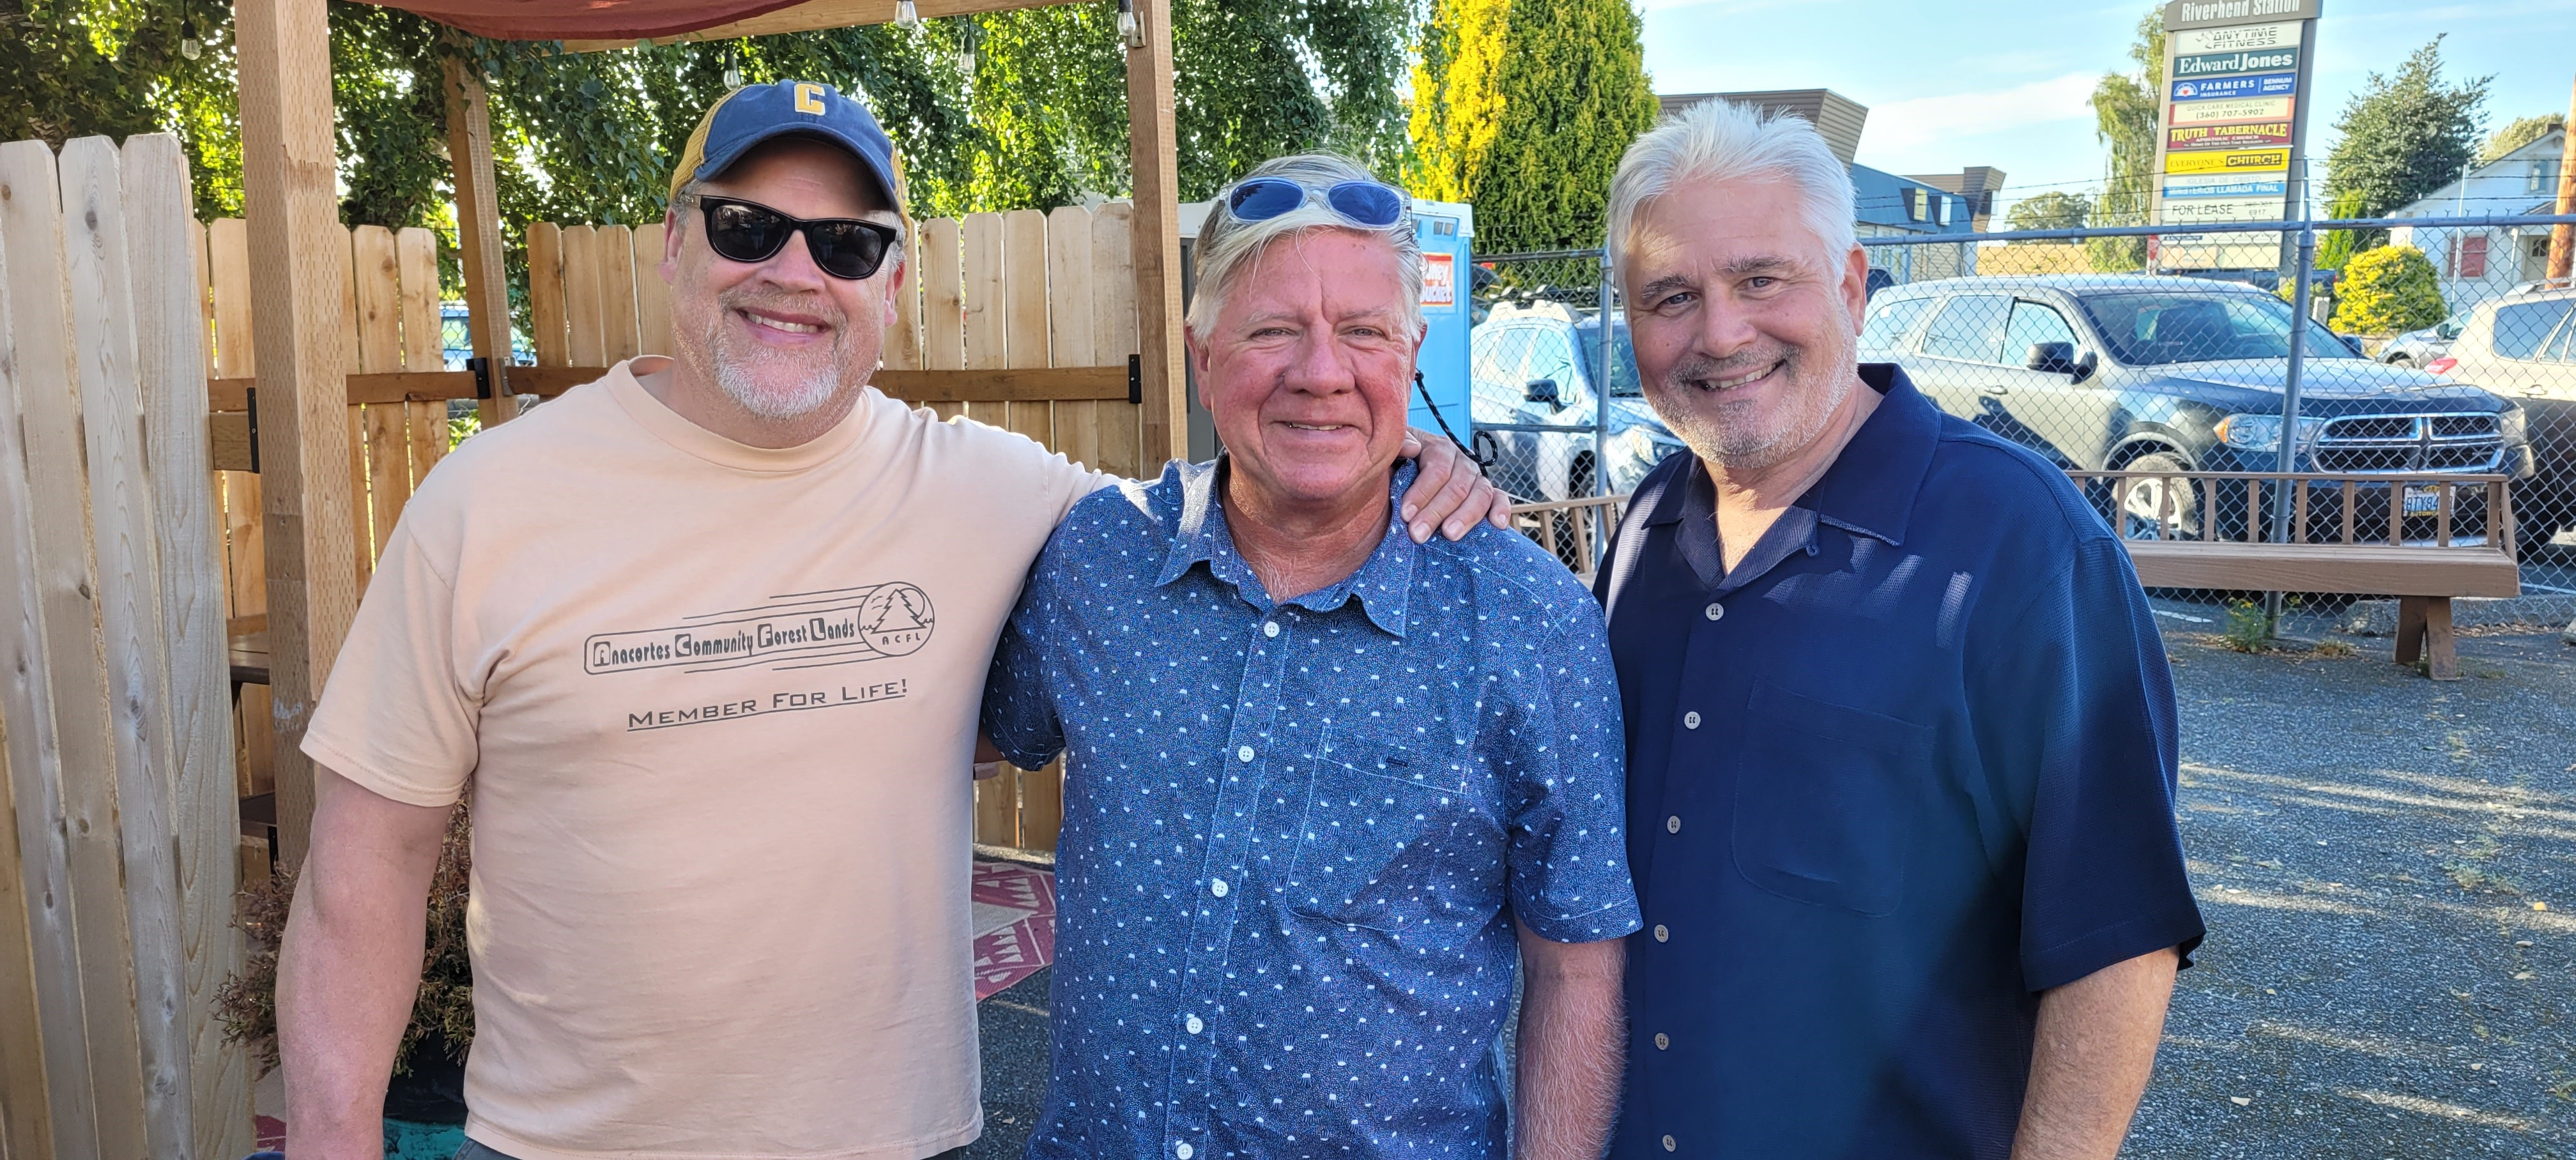 Three men standing together in front of a wooden fence. One is wearing a pale orange shirt, sunglasses, and a baseball cap. One is wearing a blue button down shirt and has sunglasses on his head. The third is wearing a dark blue button down shirt.